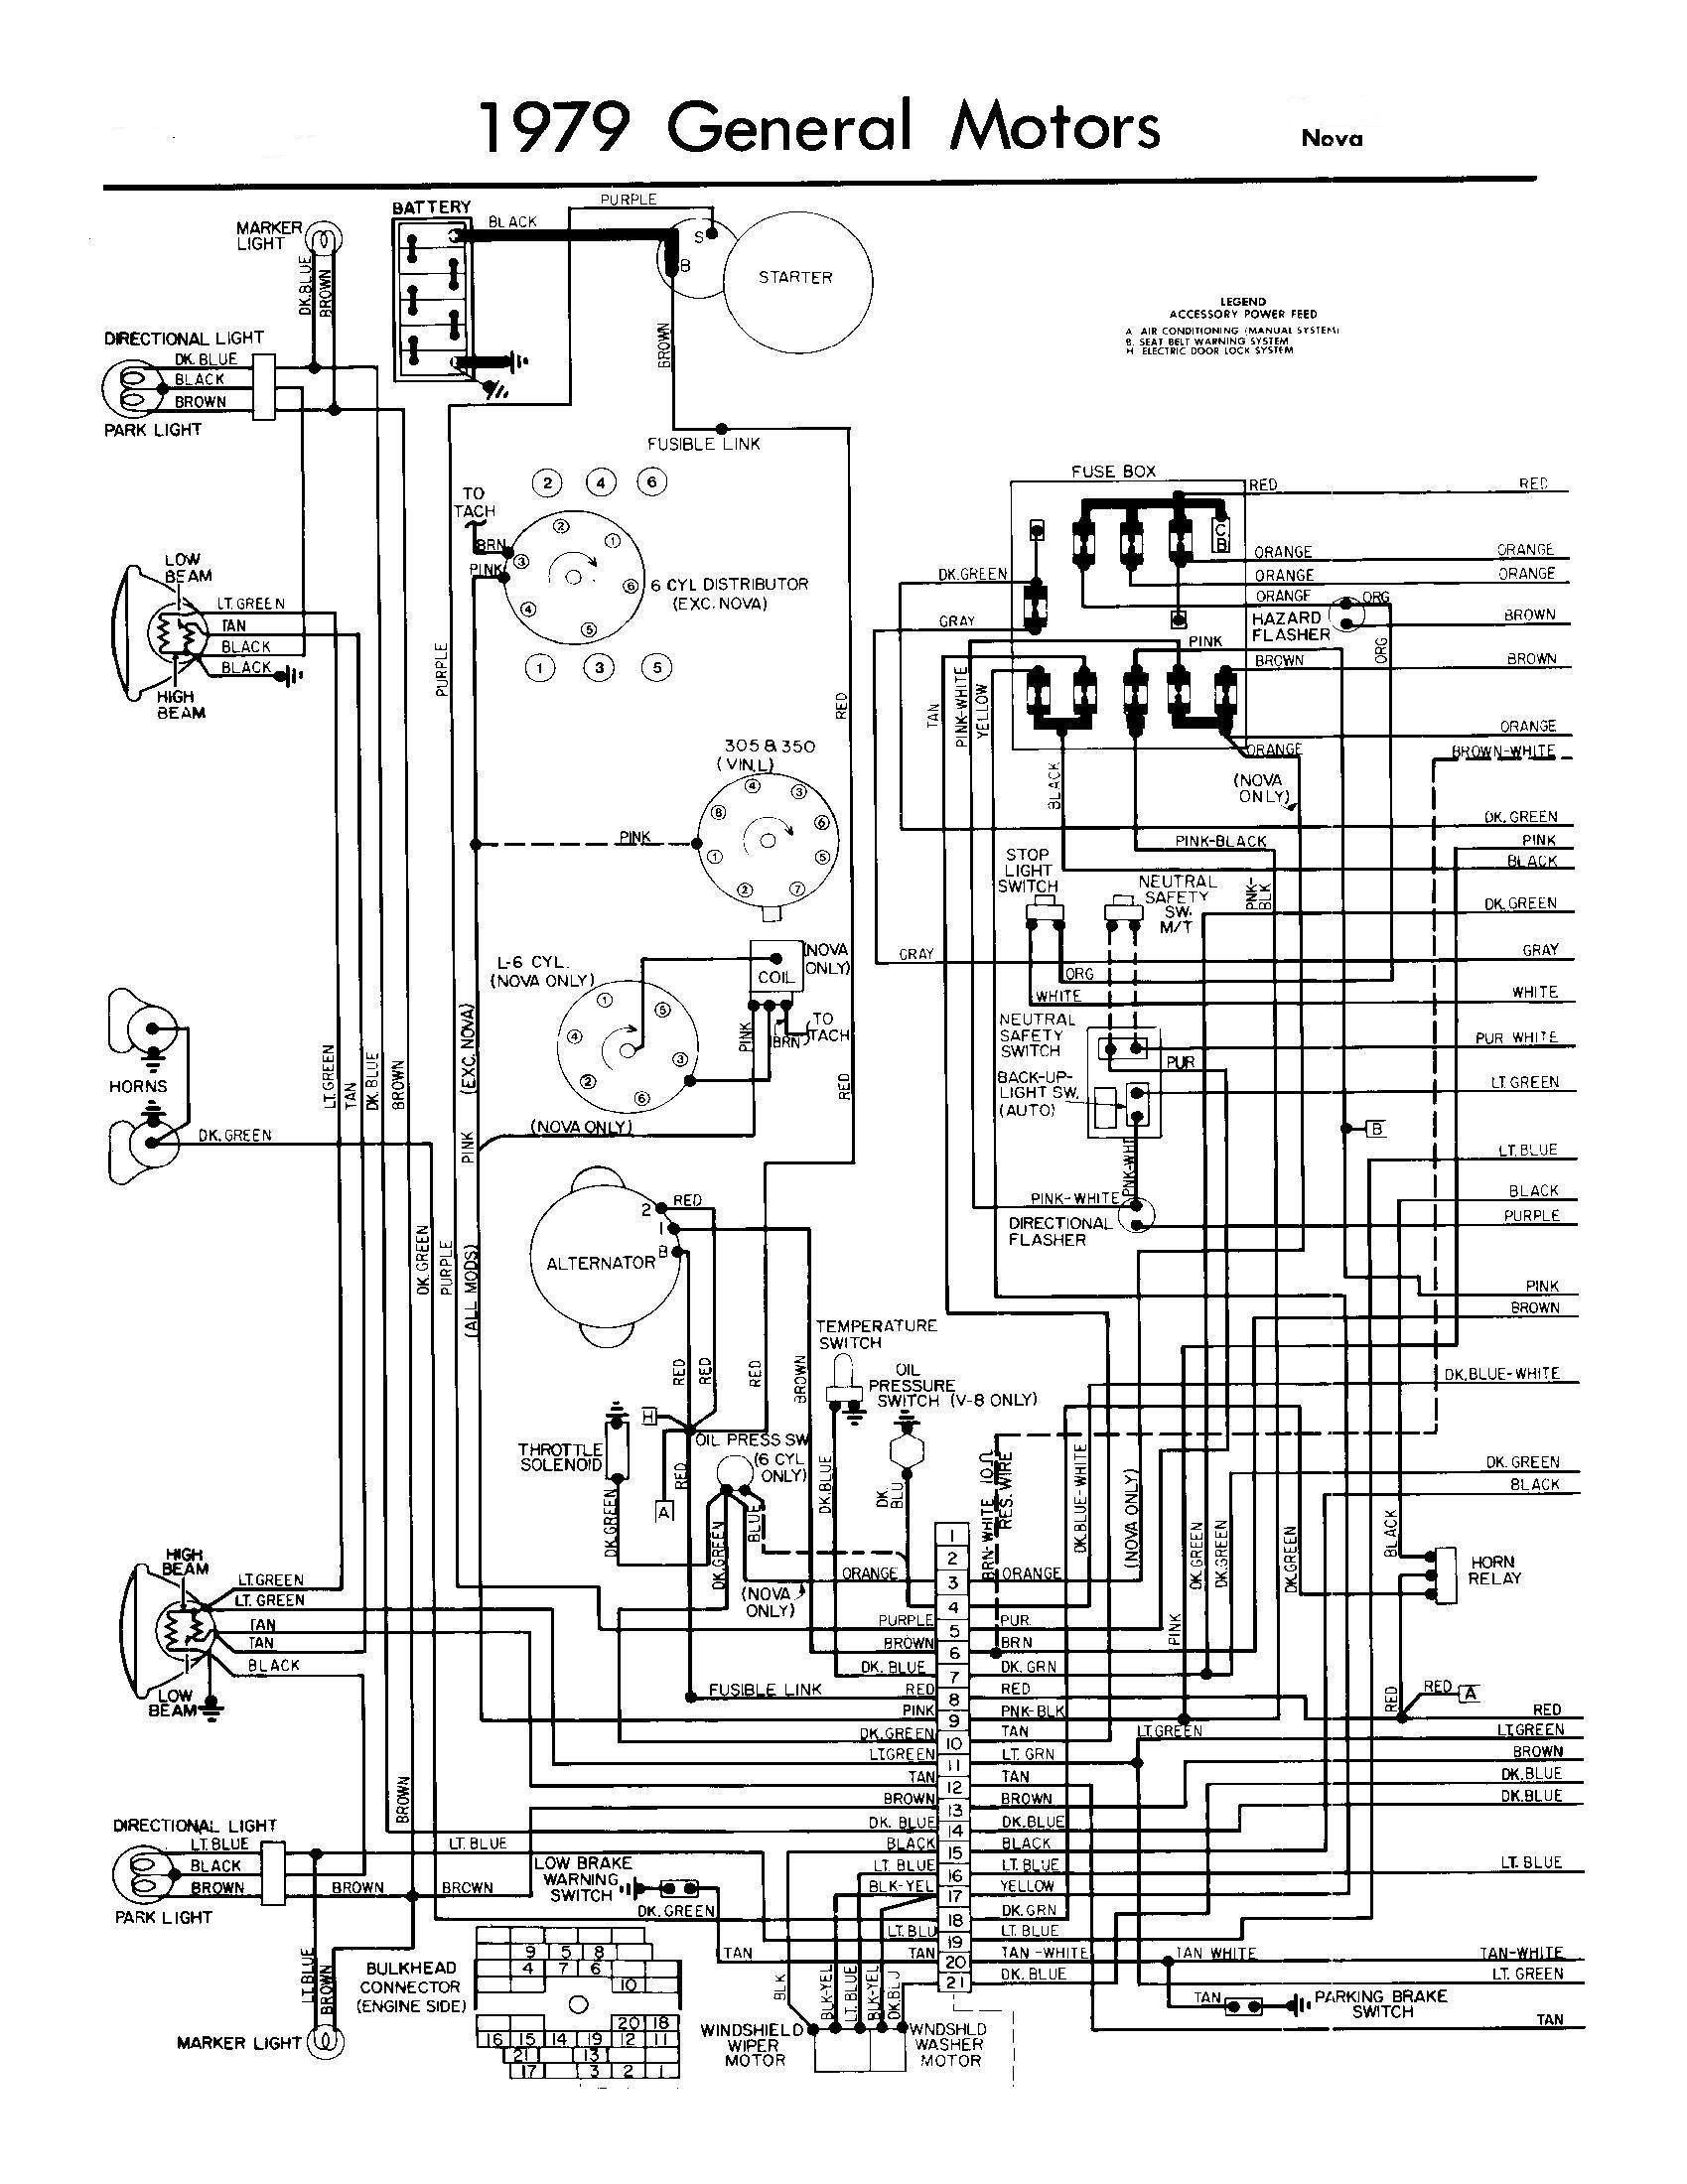 Engineering Schematics | Wiring Diagram on starcraft chassis, mercruiser tach wire diagram, pop up camper cable diagram, mercruiser alpha one diagram, mercruiser ignition diagram, starcraft steering,